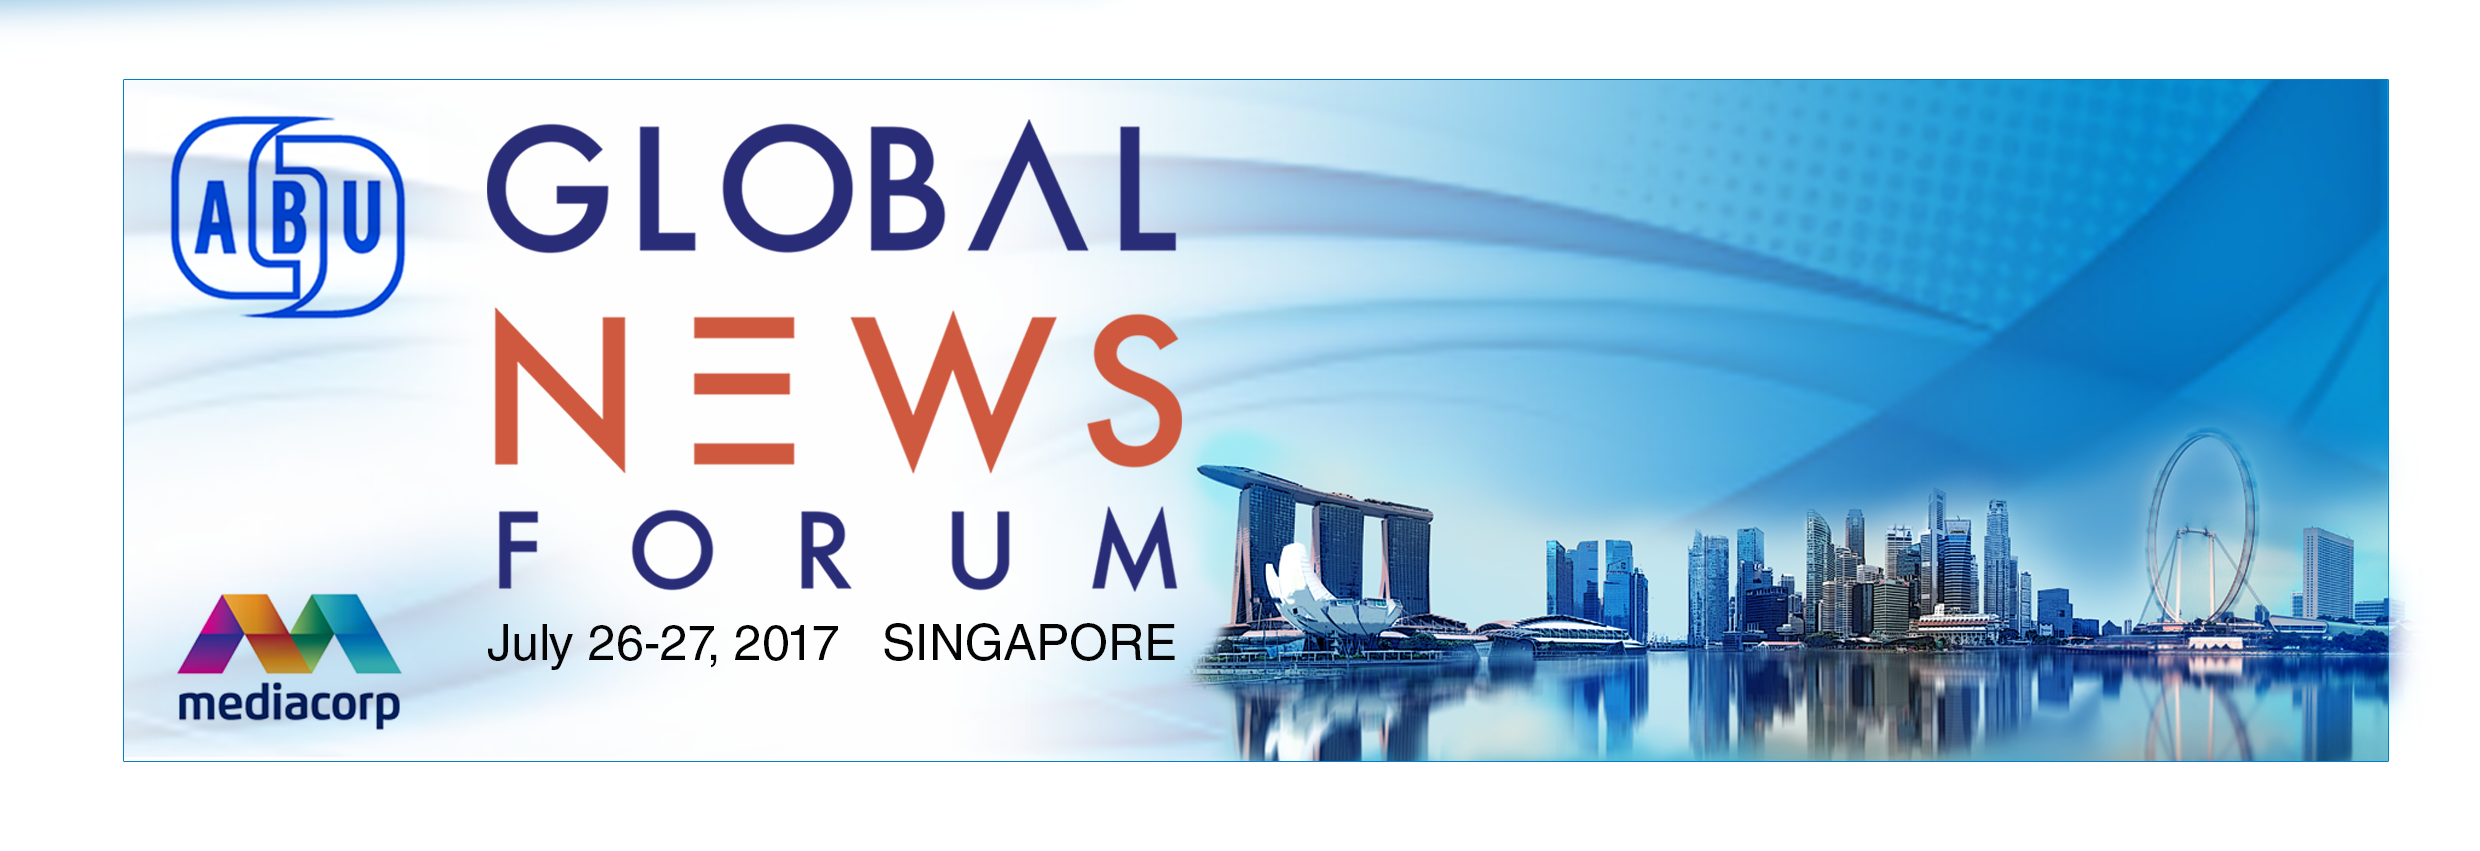 Global News Forum 2017 Singapore - Logo.